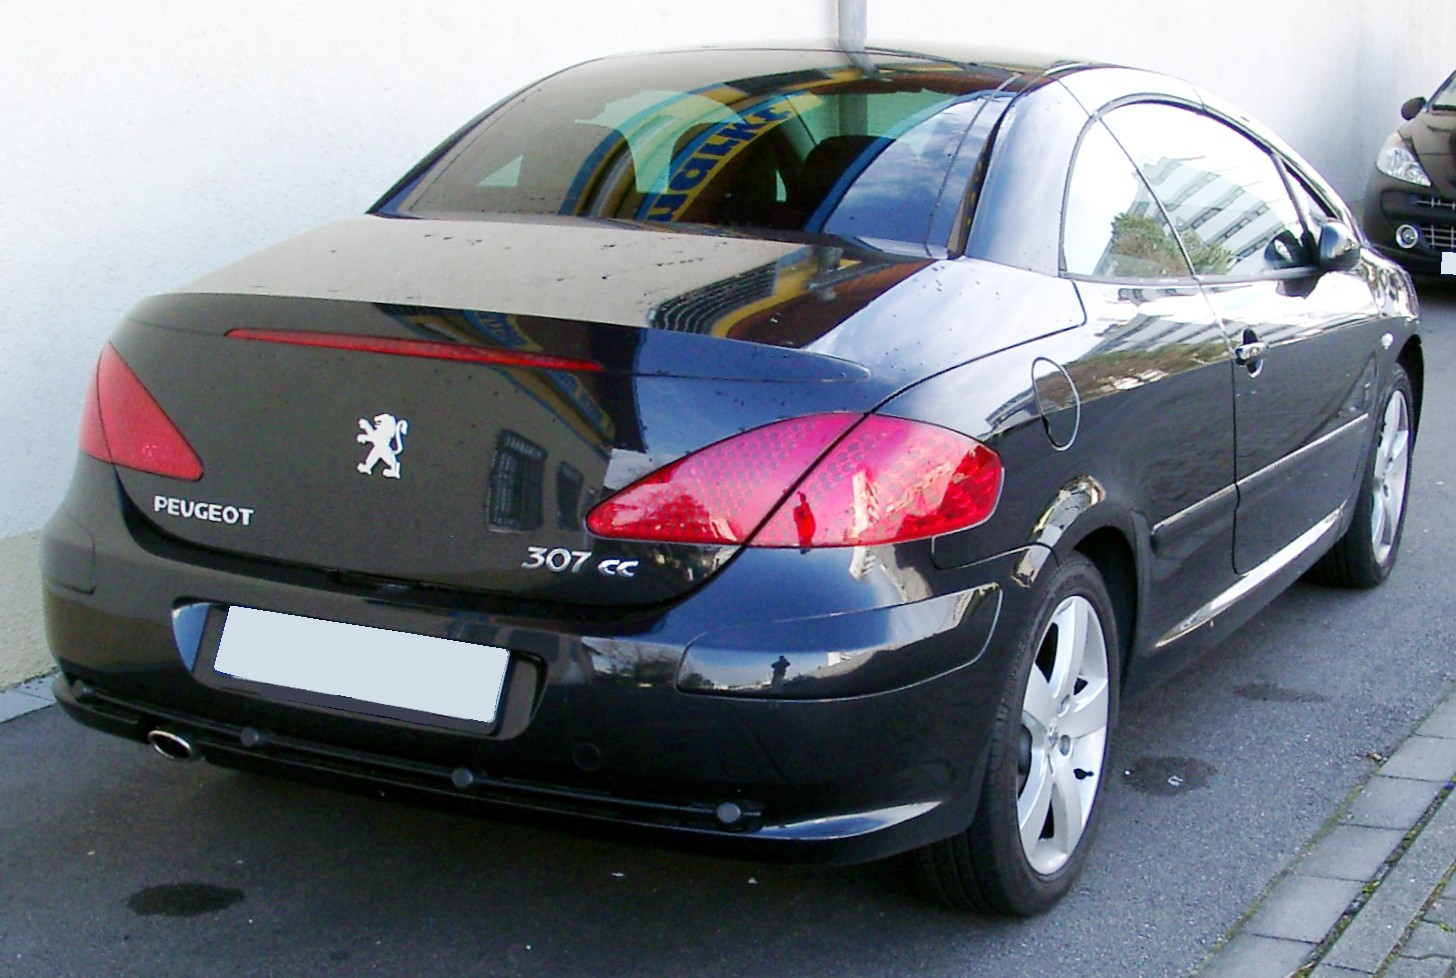 Peugeot 307CC rear Wallpaper Car Free Download Image Of